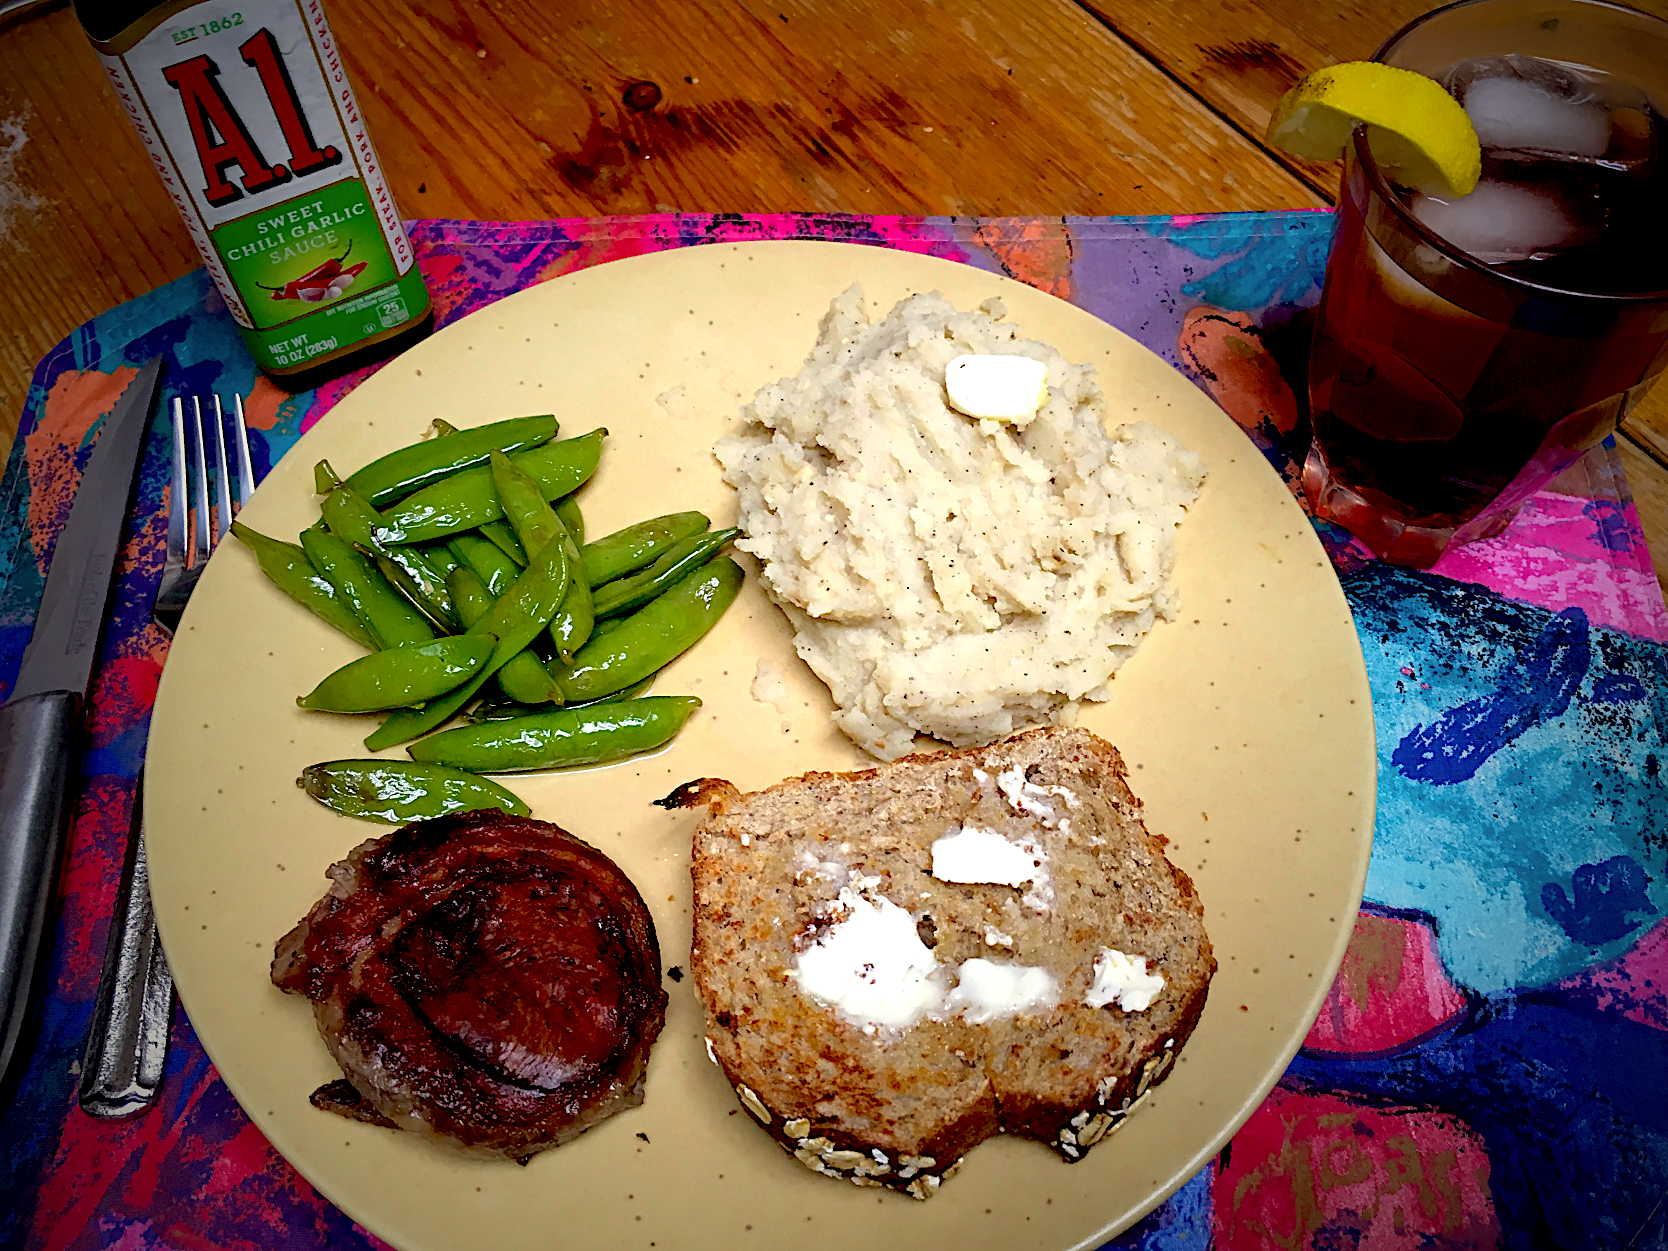 Grilled Bacon Wrapped Filet Mignonette, Steamed Snow Peas, Garlic Mashed Potato's & Toast